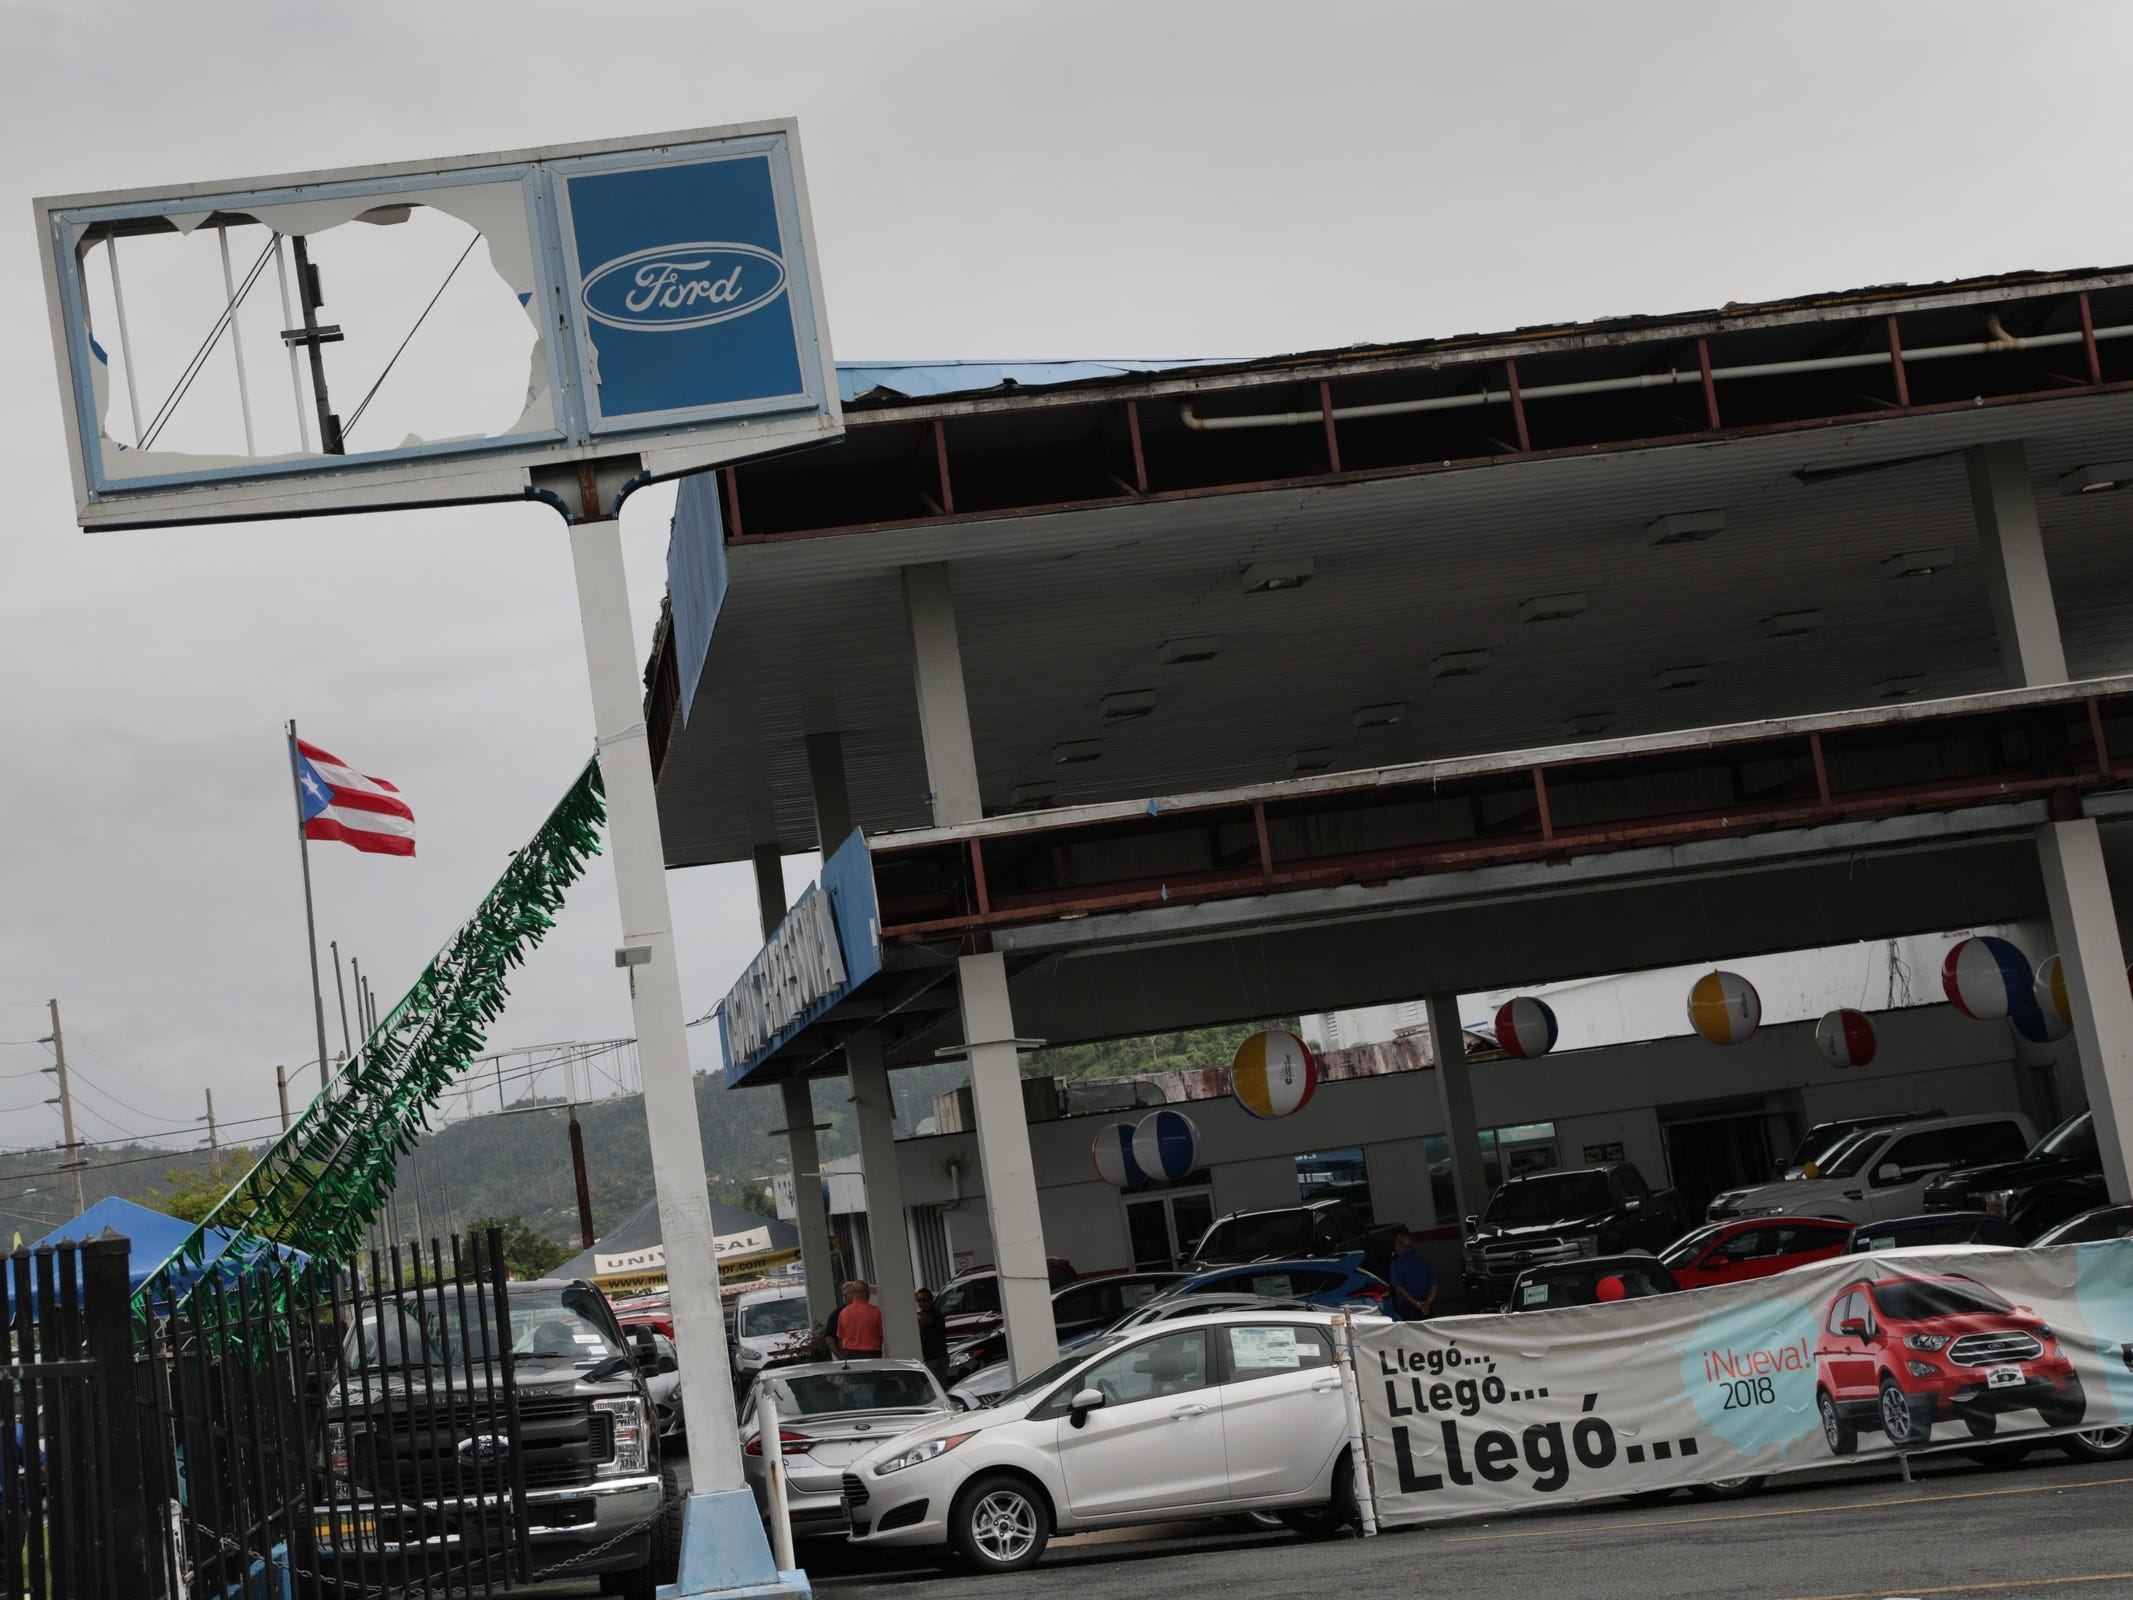 Damage to the Caguas Expressway Motors sign, a Ford dealer is still visible ten months after Hurricane Maria hit Caguas, Puerto Rico.